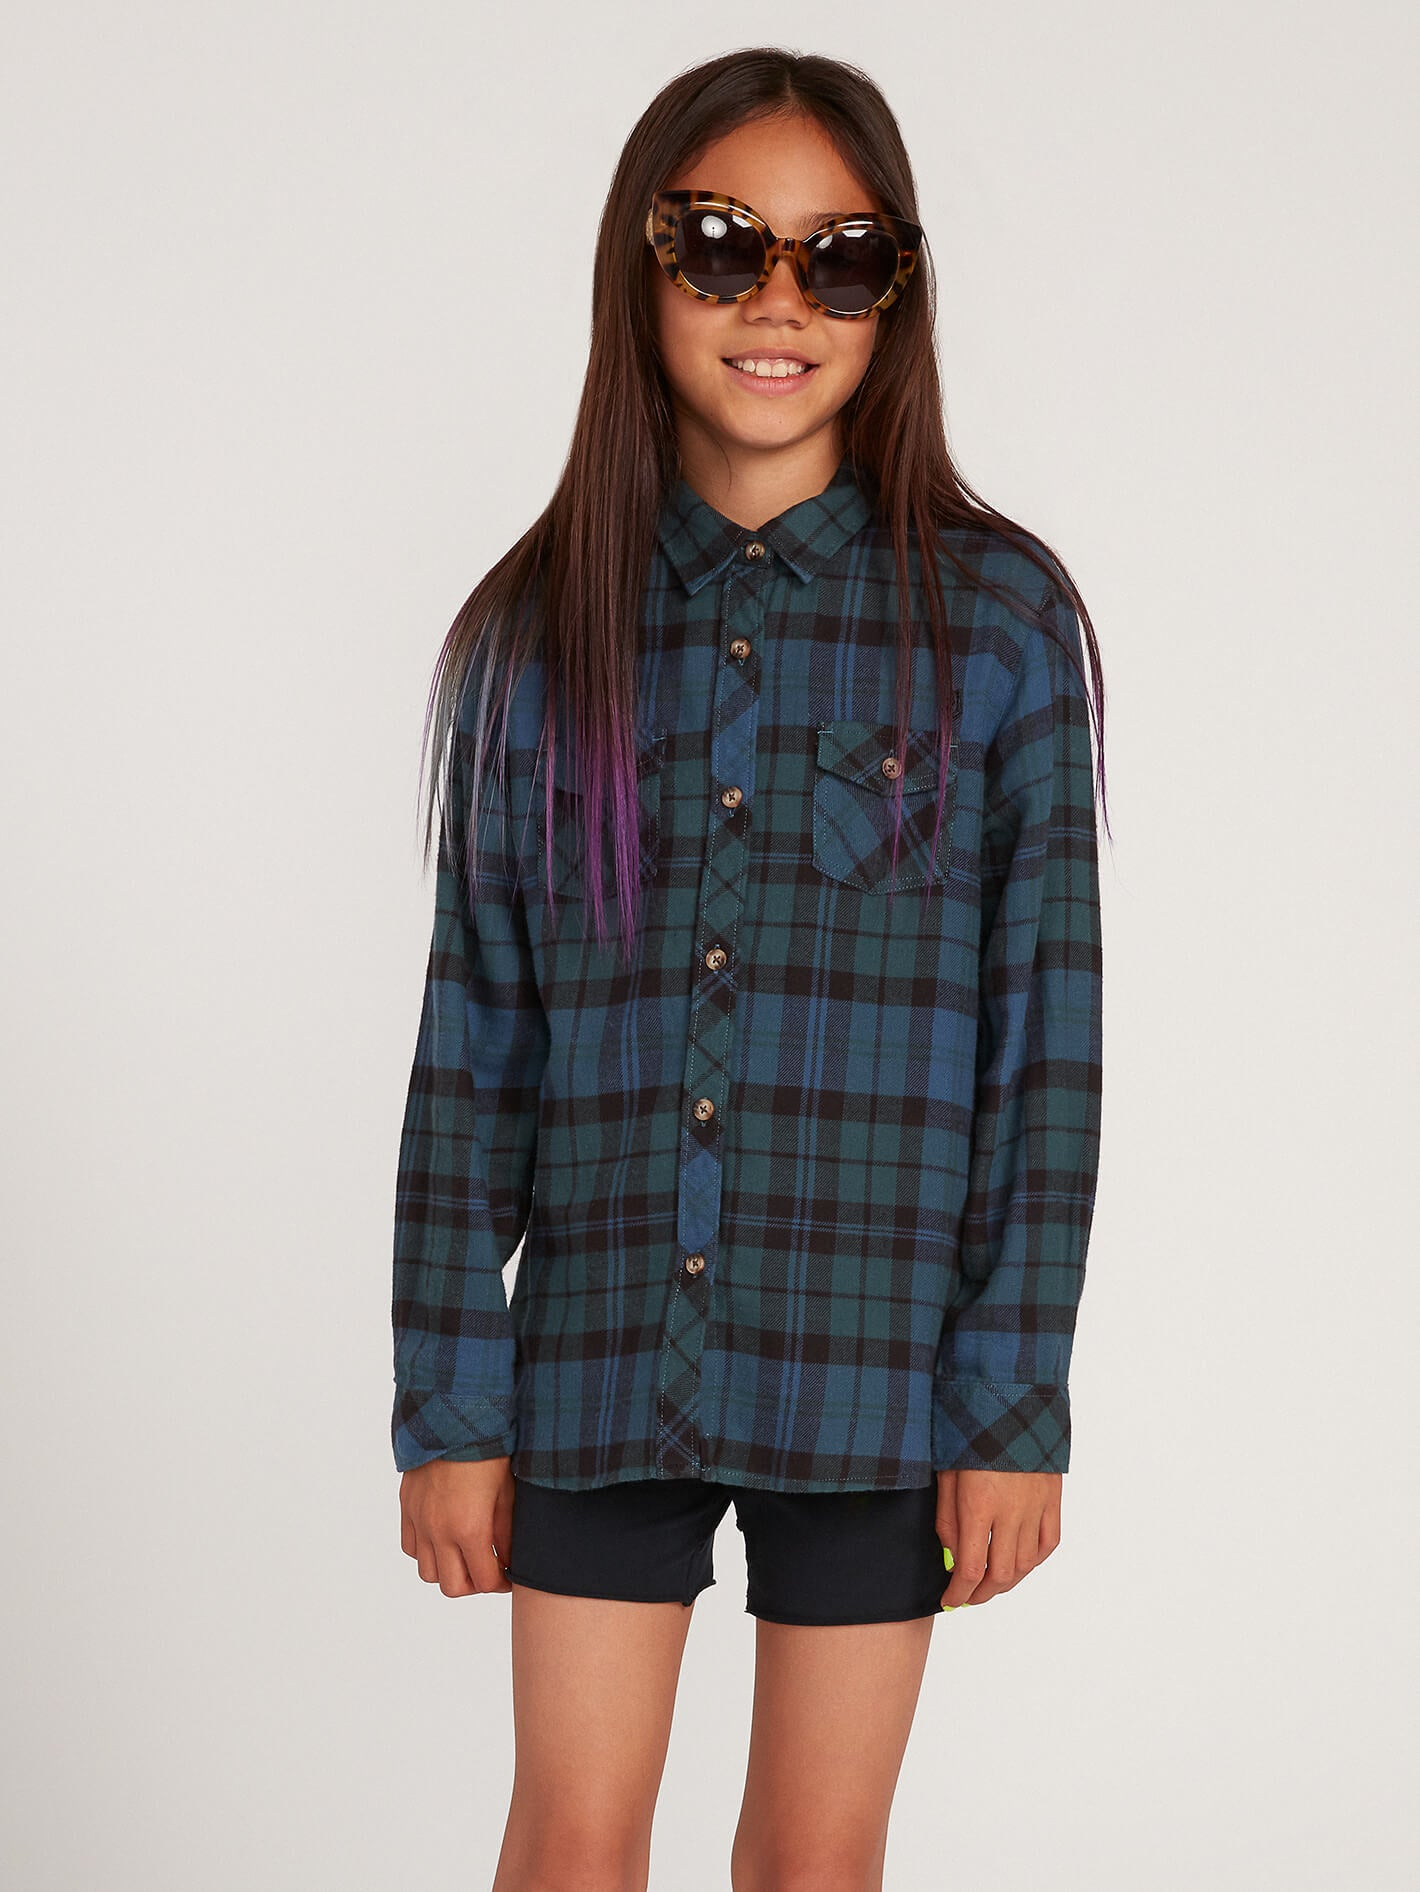 Volcom Big Girls Getting Rad Plaid Long Sleeve - Emerald Green - Emerald Green - M